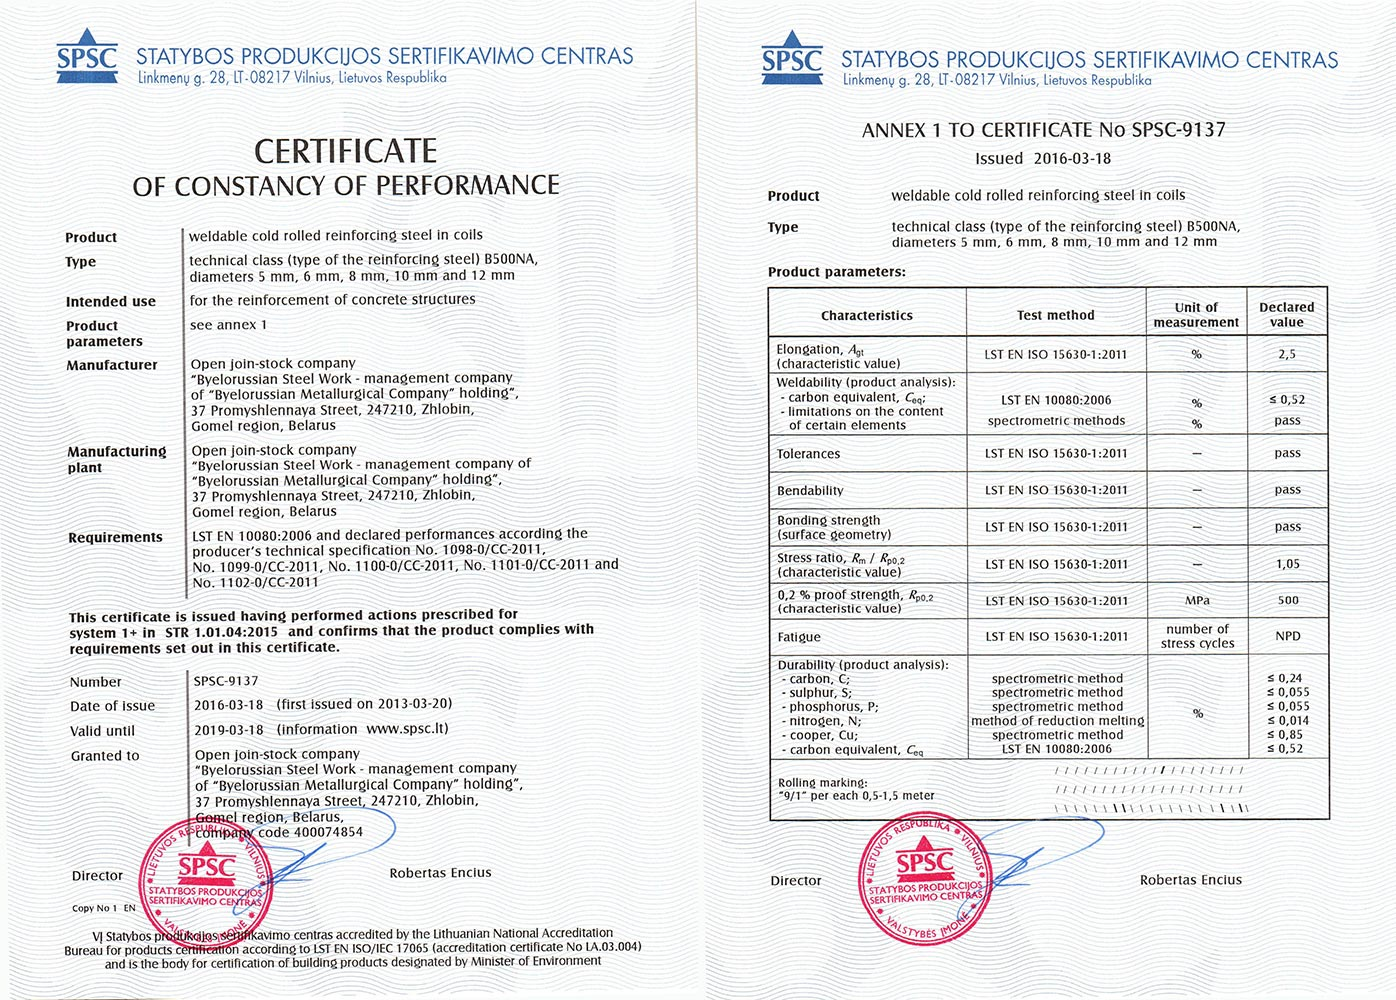 Certificate«SPSC», Lithuania, No. SPSC-9137 for production of weldable cold-deformed reinforcing steel in coils BSt500KR(A) Ø 5-12 mm in conformity with standard LST EN 10080:2006 and producer's technical specifications No.1098-0/CC-2011, No.1099-0/CC-2011, No.1100-0/CC-2011, No.1101-0/CC-2011, No.1102-0/CC-2011.